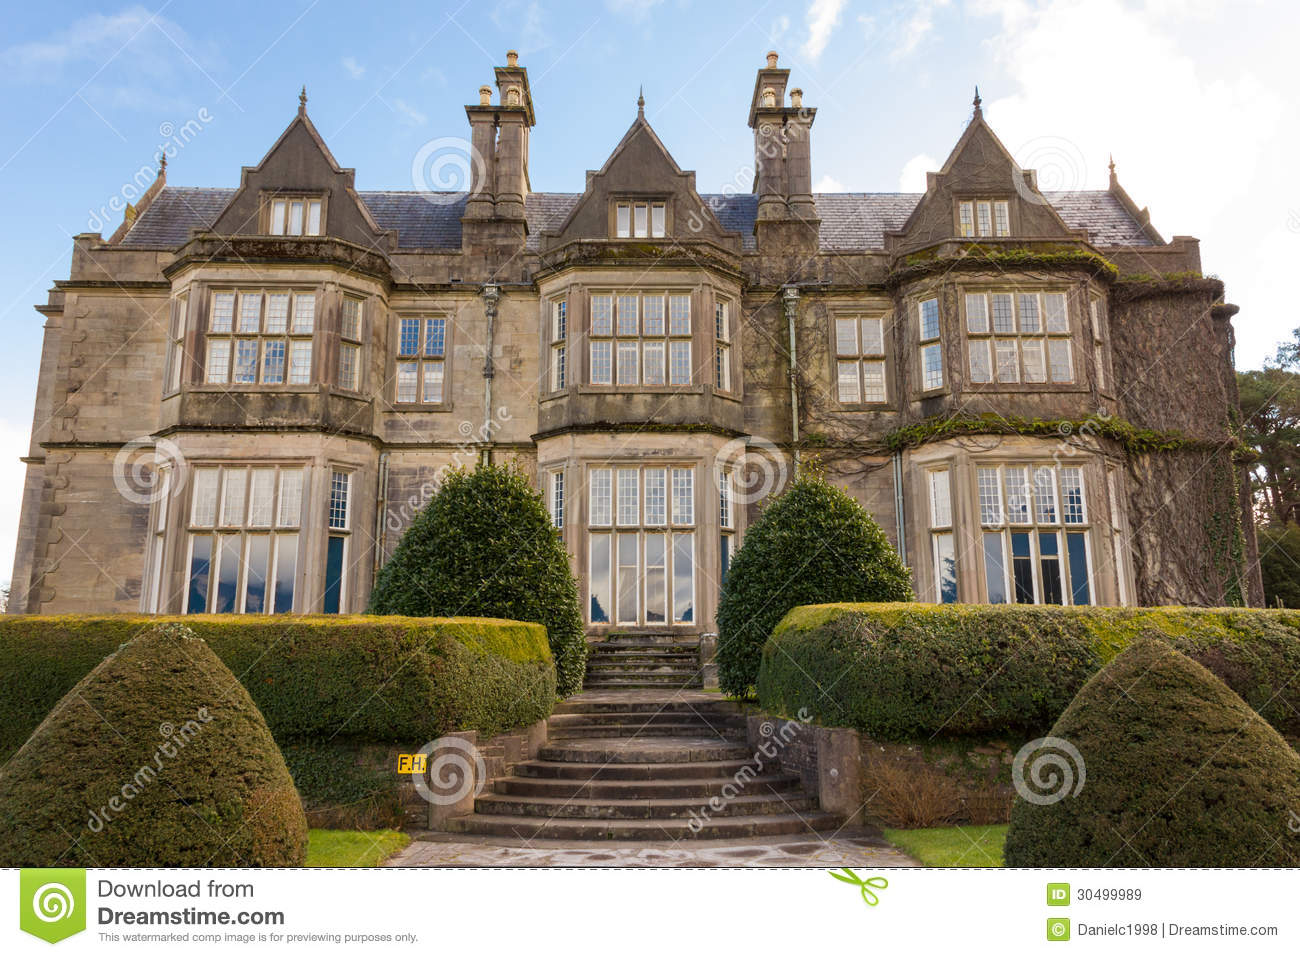 muckross house gardens killarney ireland victorian mansion built s tudor style was visited queen victoria 30499989